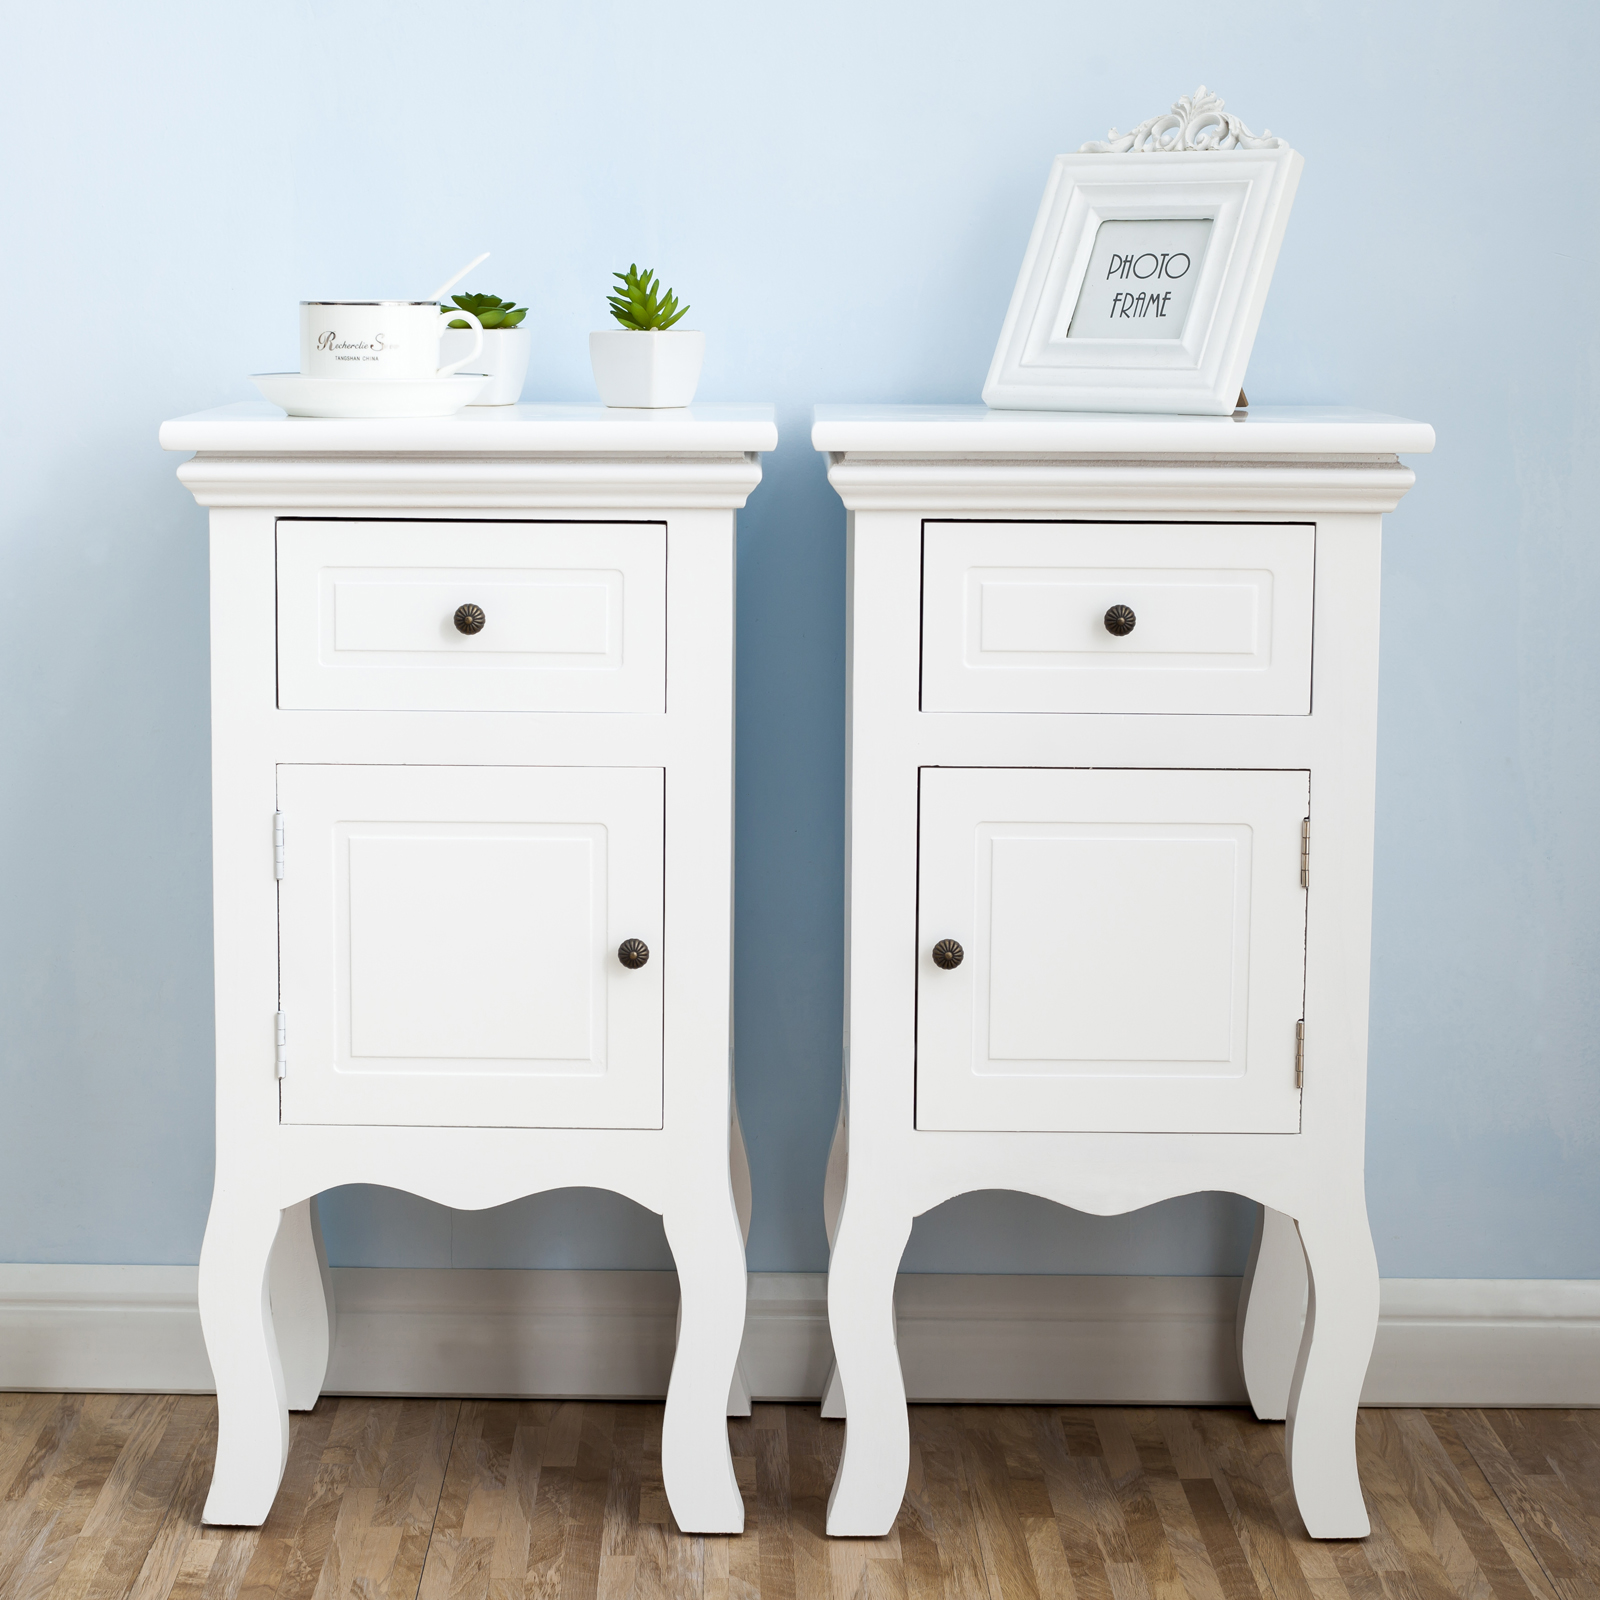 White pair of bedside table unit wooden cabinet 2 drawers - Petite table de nuit ...